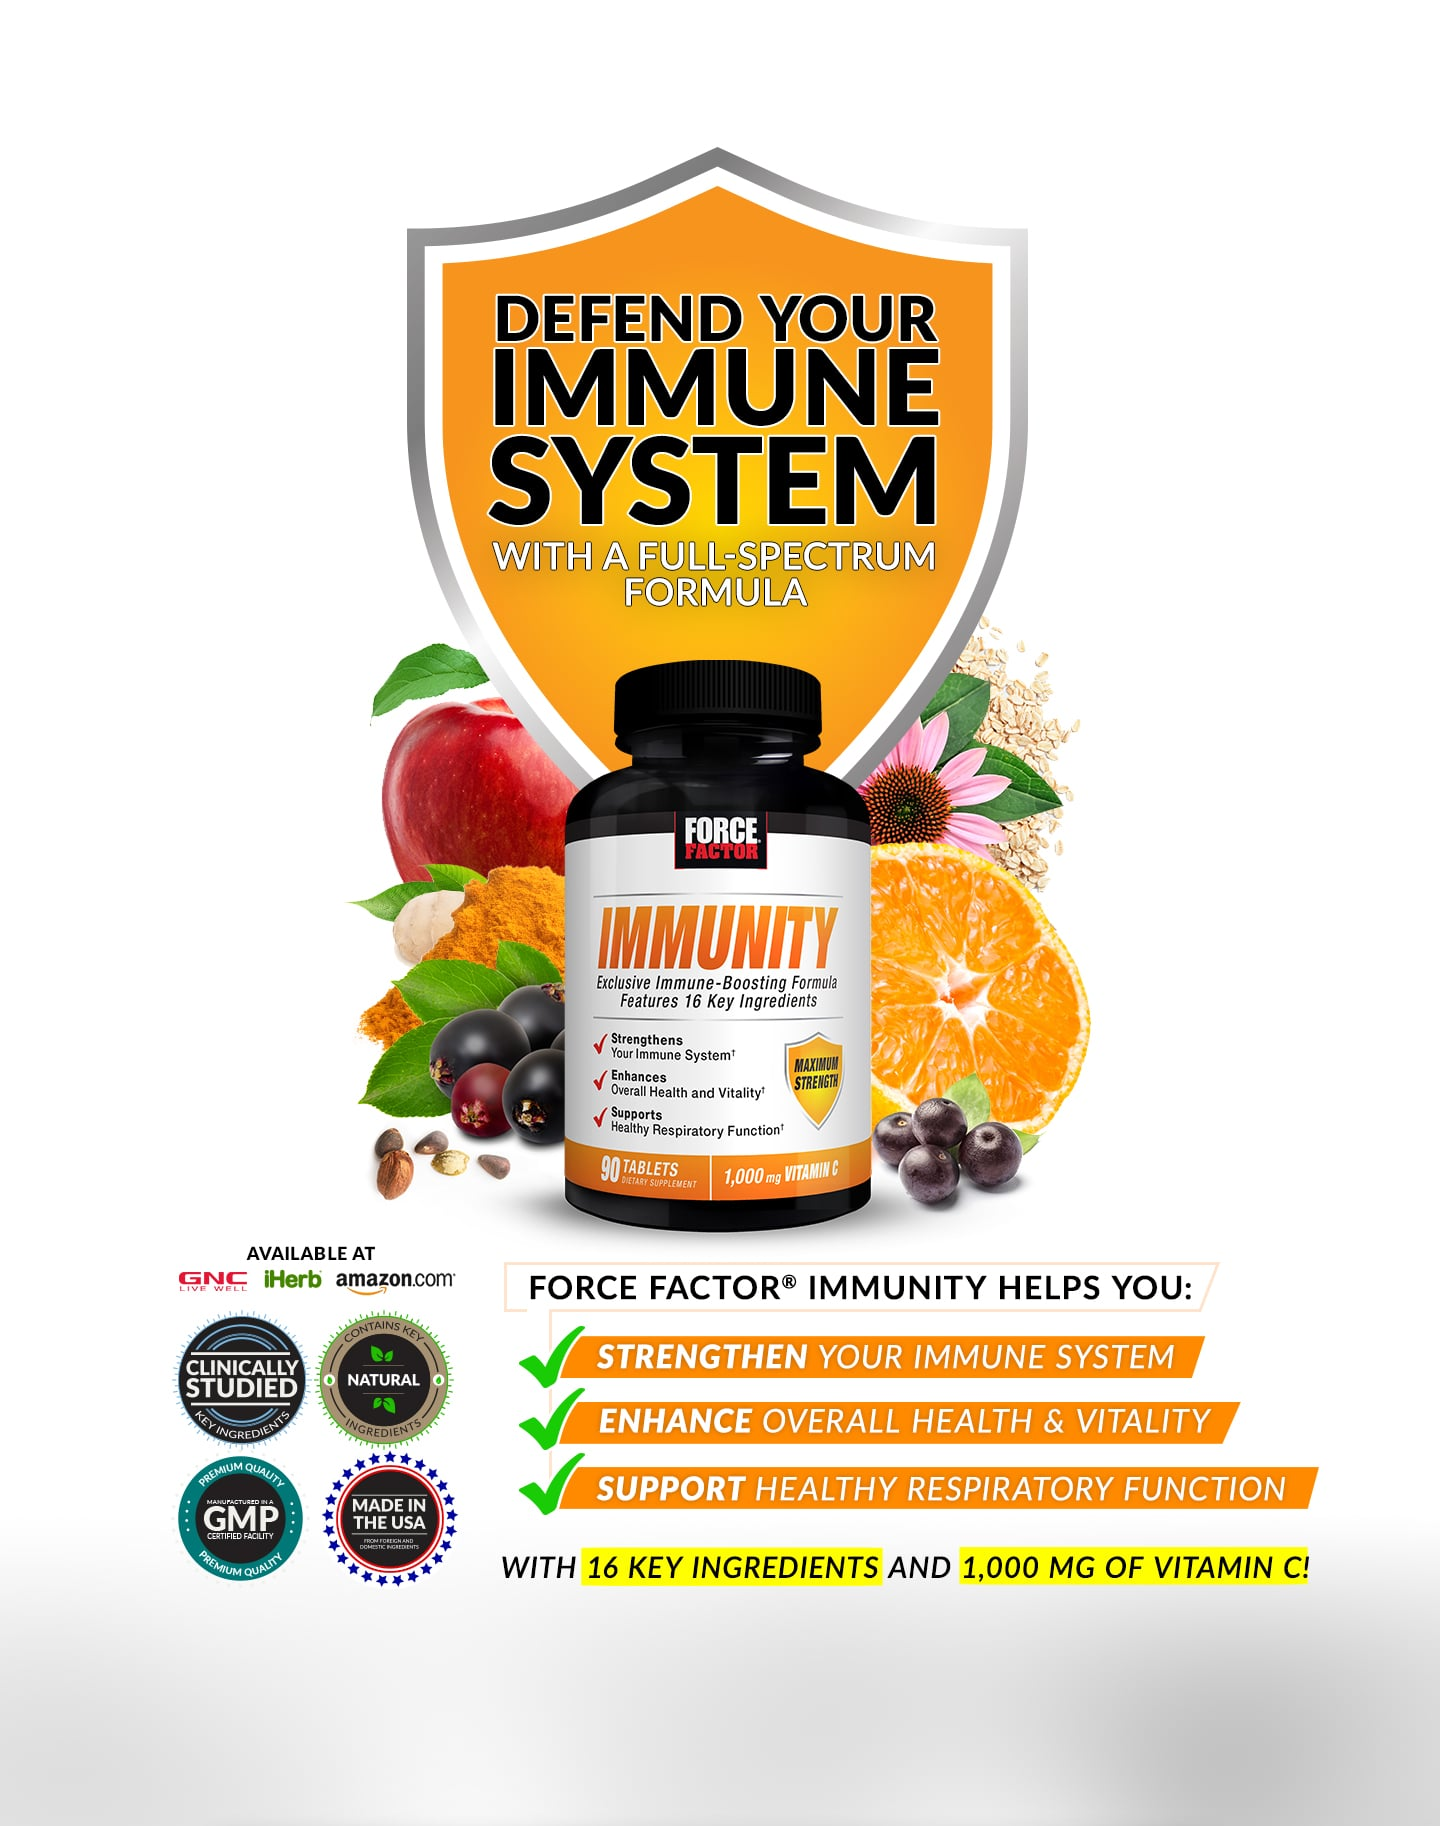 DEFEND YOUR IMMUNE SYSTEM WITH A FULL-SPECTRUM FORMULA. FORCE FACTOR® IMMUNITY HELPS YOU: STRENGHTEN YOUR IMMUNE SYSTEM, ENHANCE OVERALL HEALTH AND VITALITY, SUPPORT HEALTHY RESPIRATORY FUNCTION. WITH 16 KEY INGREDIENTS AND 1,000 MG OF VITAMIN C!